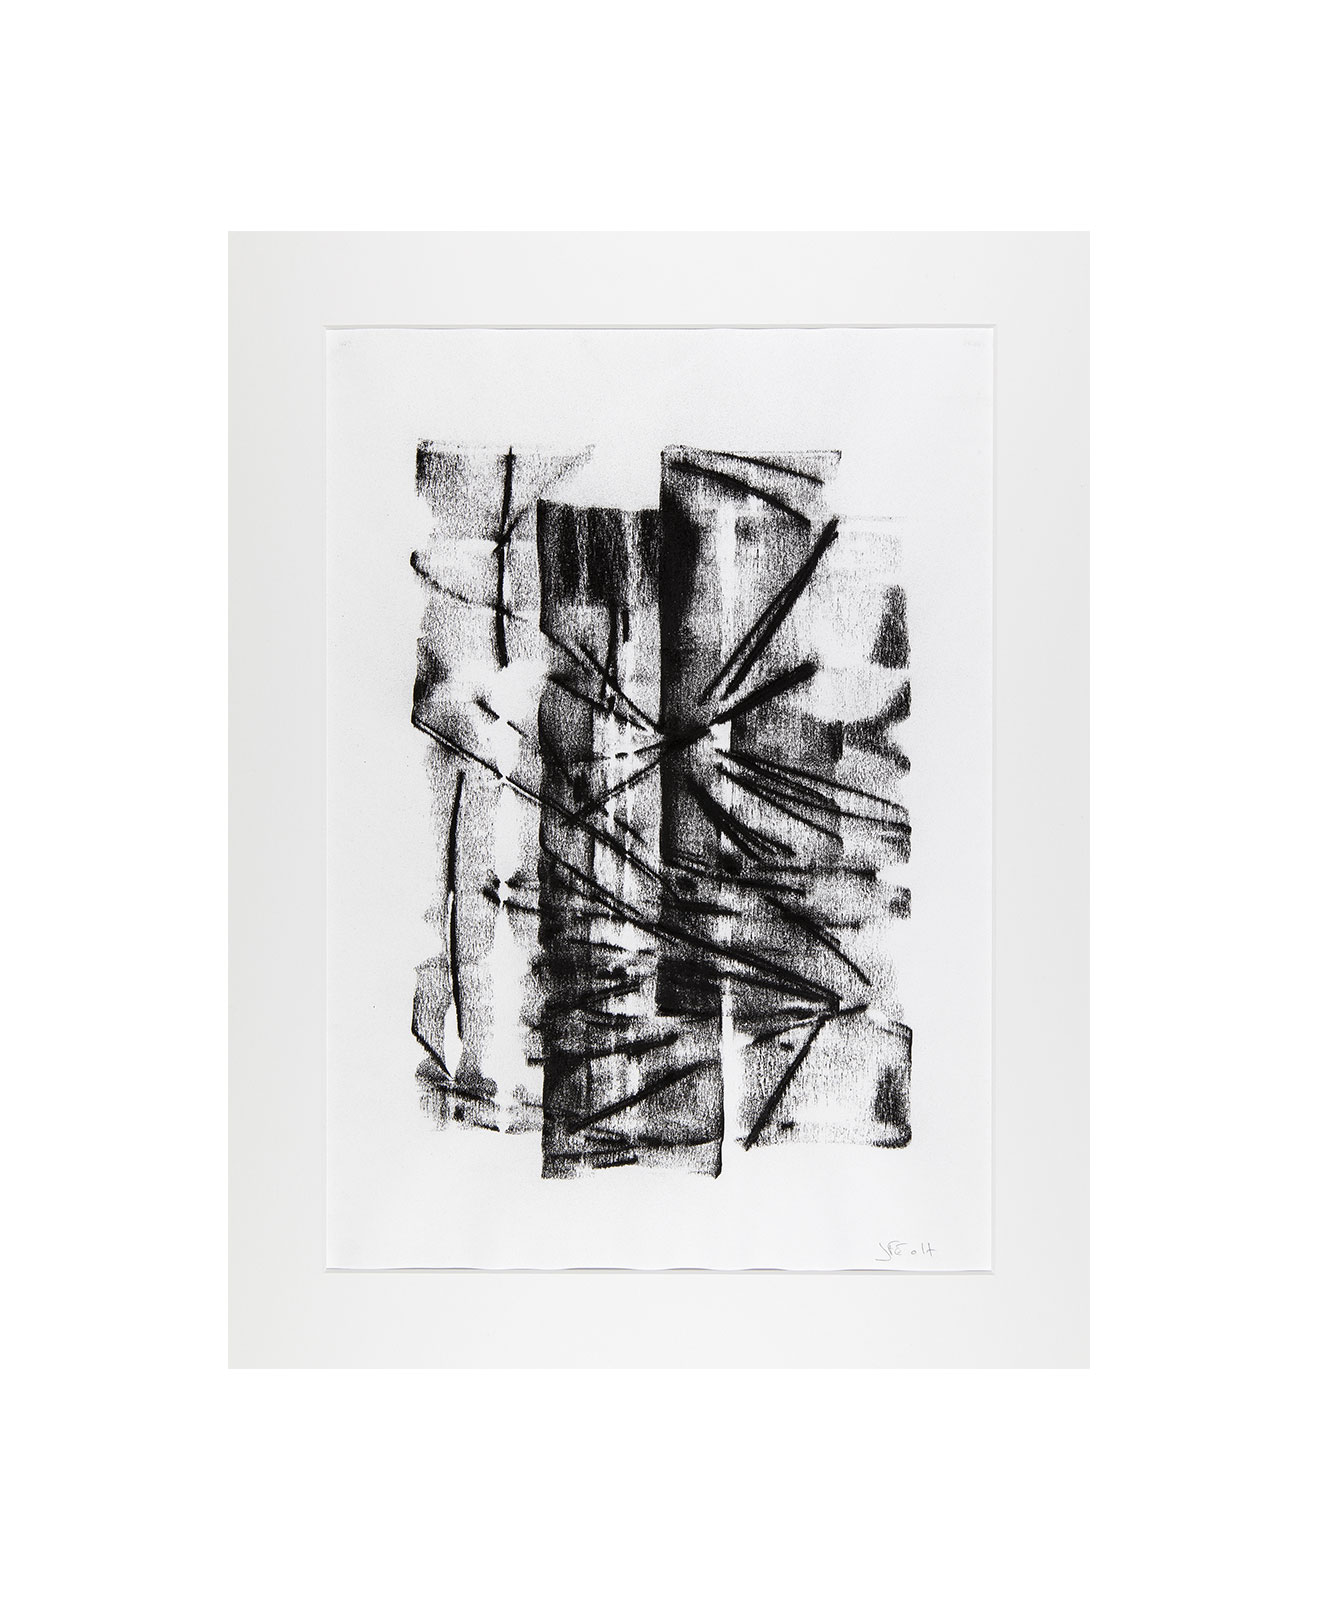 Cha 1.18, Charcoal on paper, black and white artwork, drawing, jf escande, contemporary art